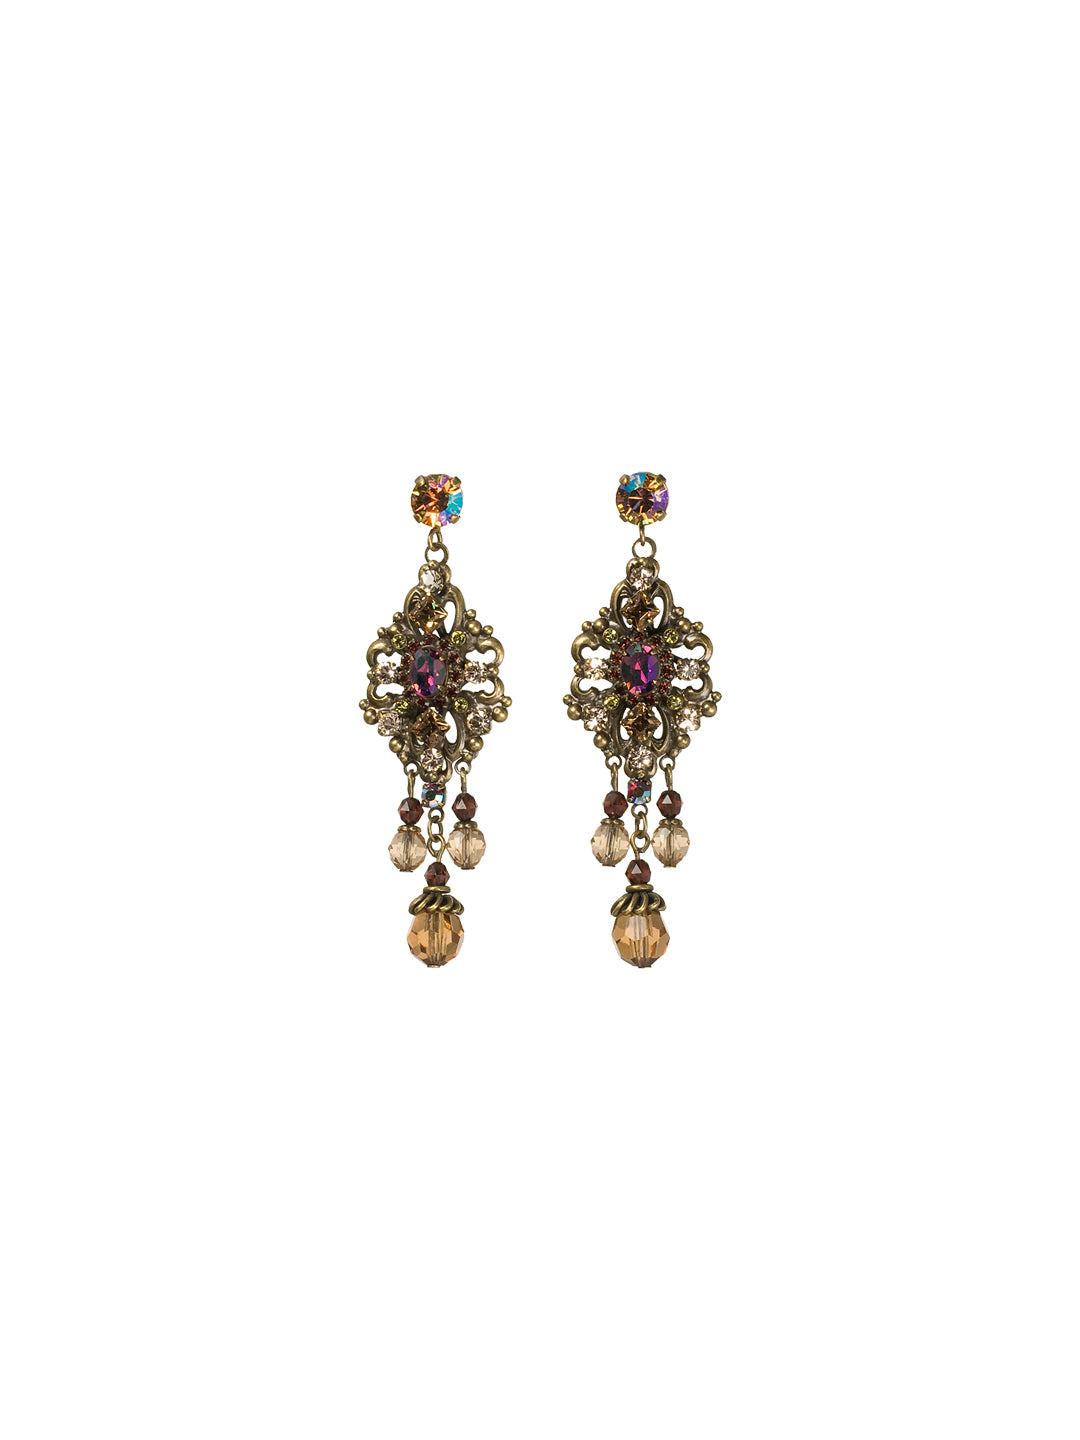 Double Loop Filigree Chandelier Earring - ECJ33AGTAP